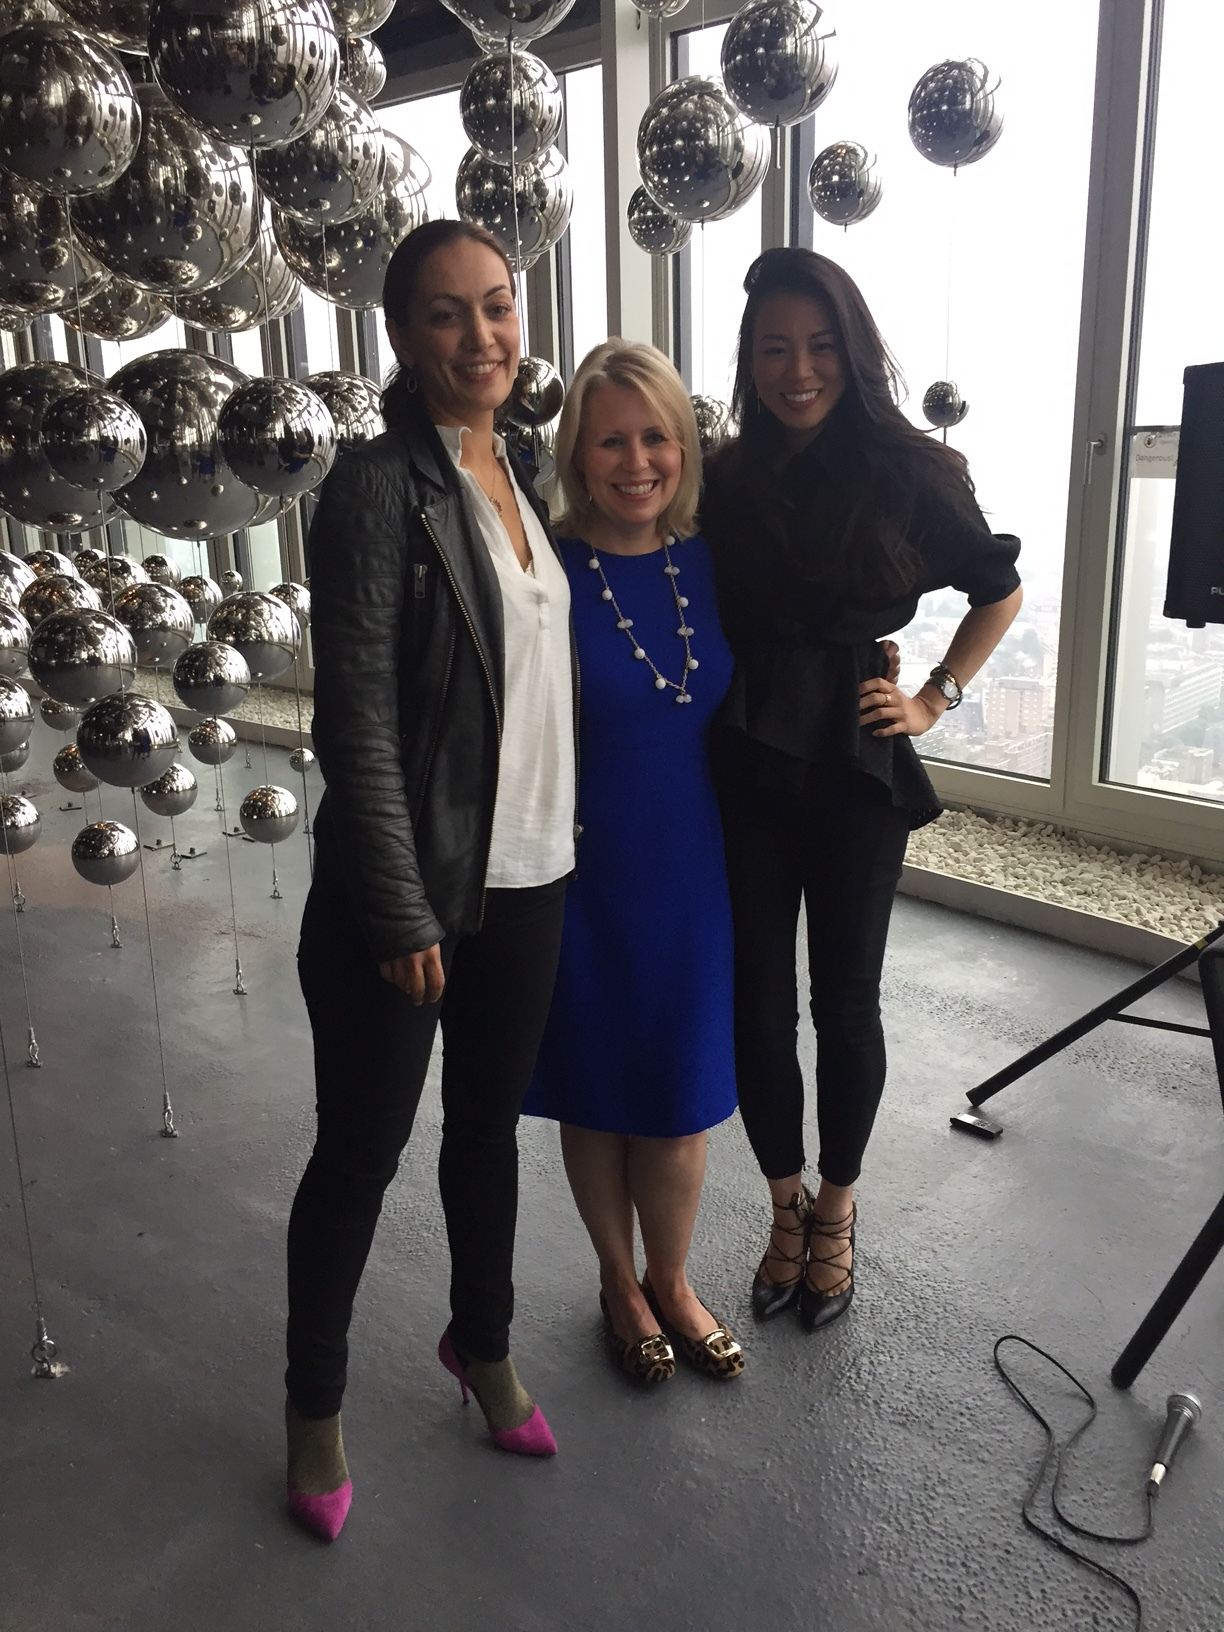 From left to right: BIG CEO  Sheela Søgaard , ZHA Global Head of People & Talent  Caroline Roberts  & Design Haus Liberty Founder  Dara Huang